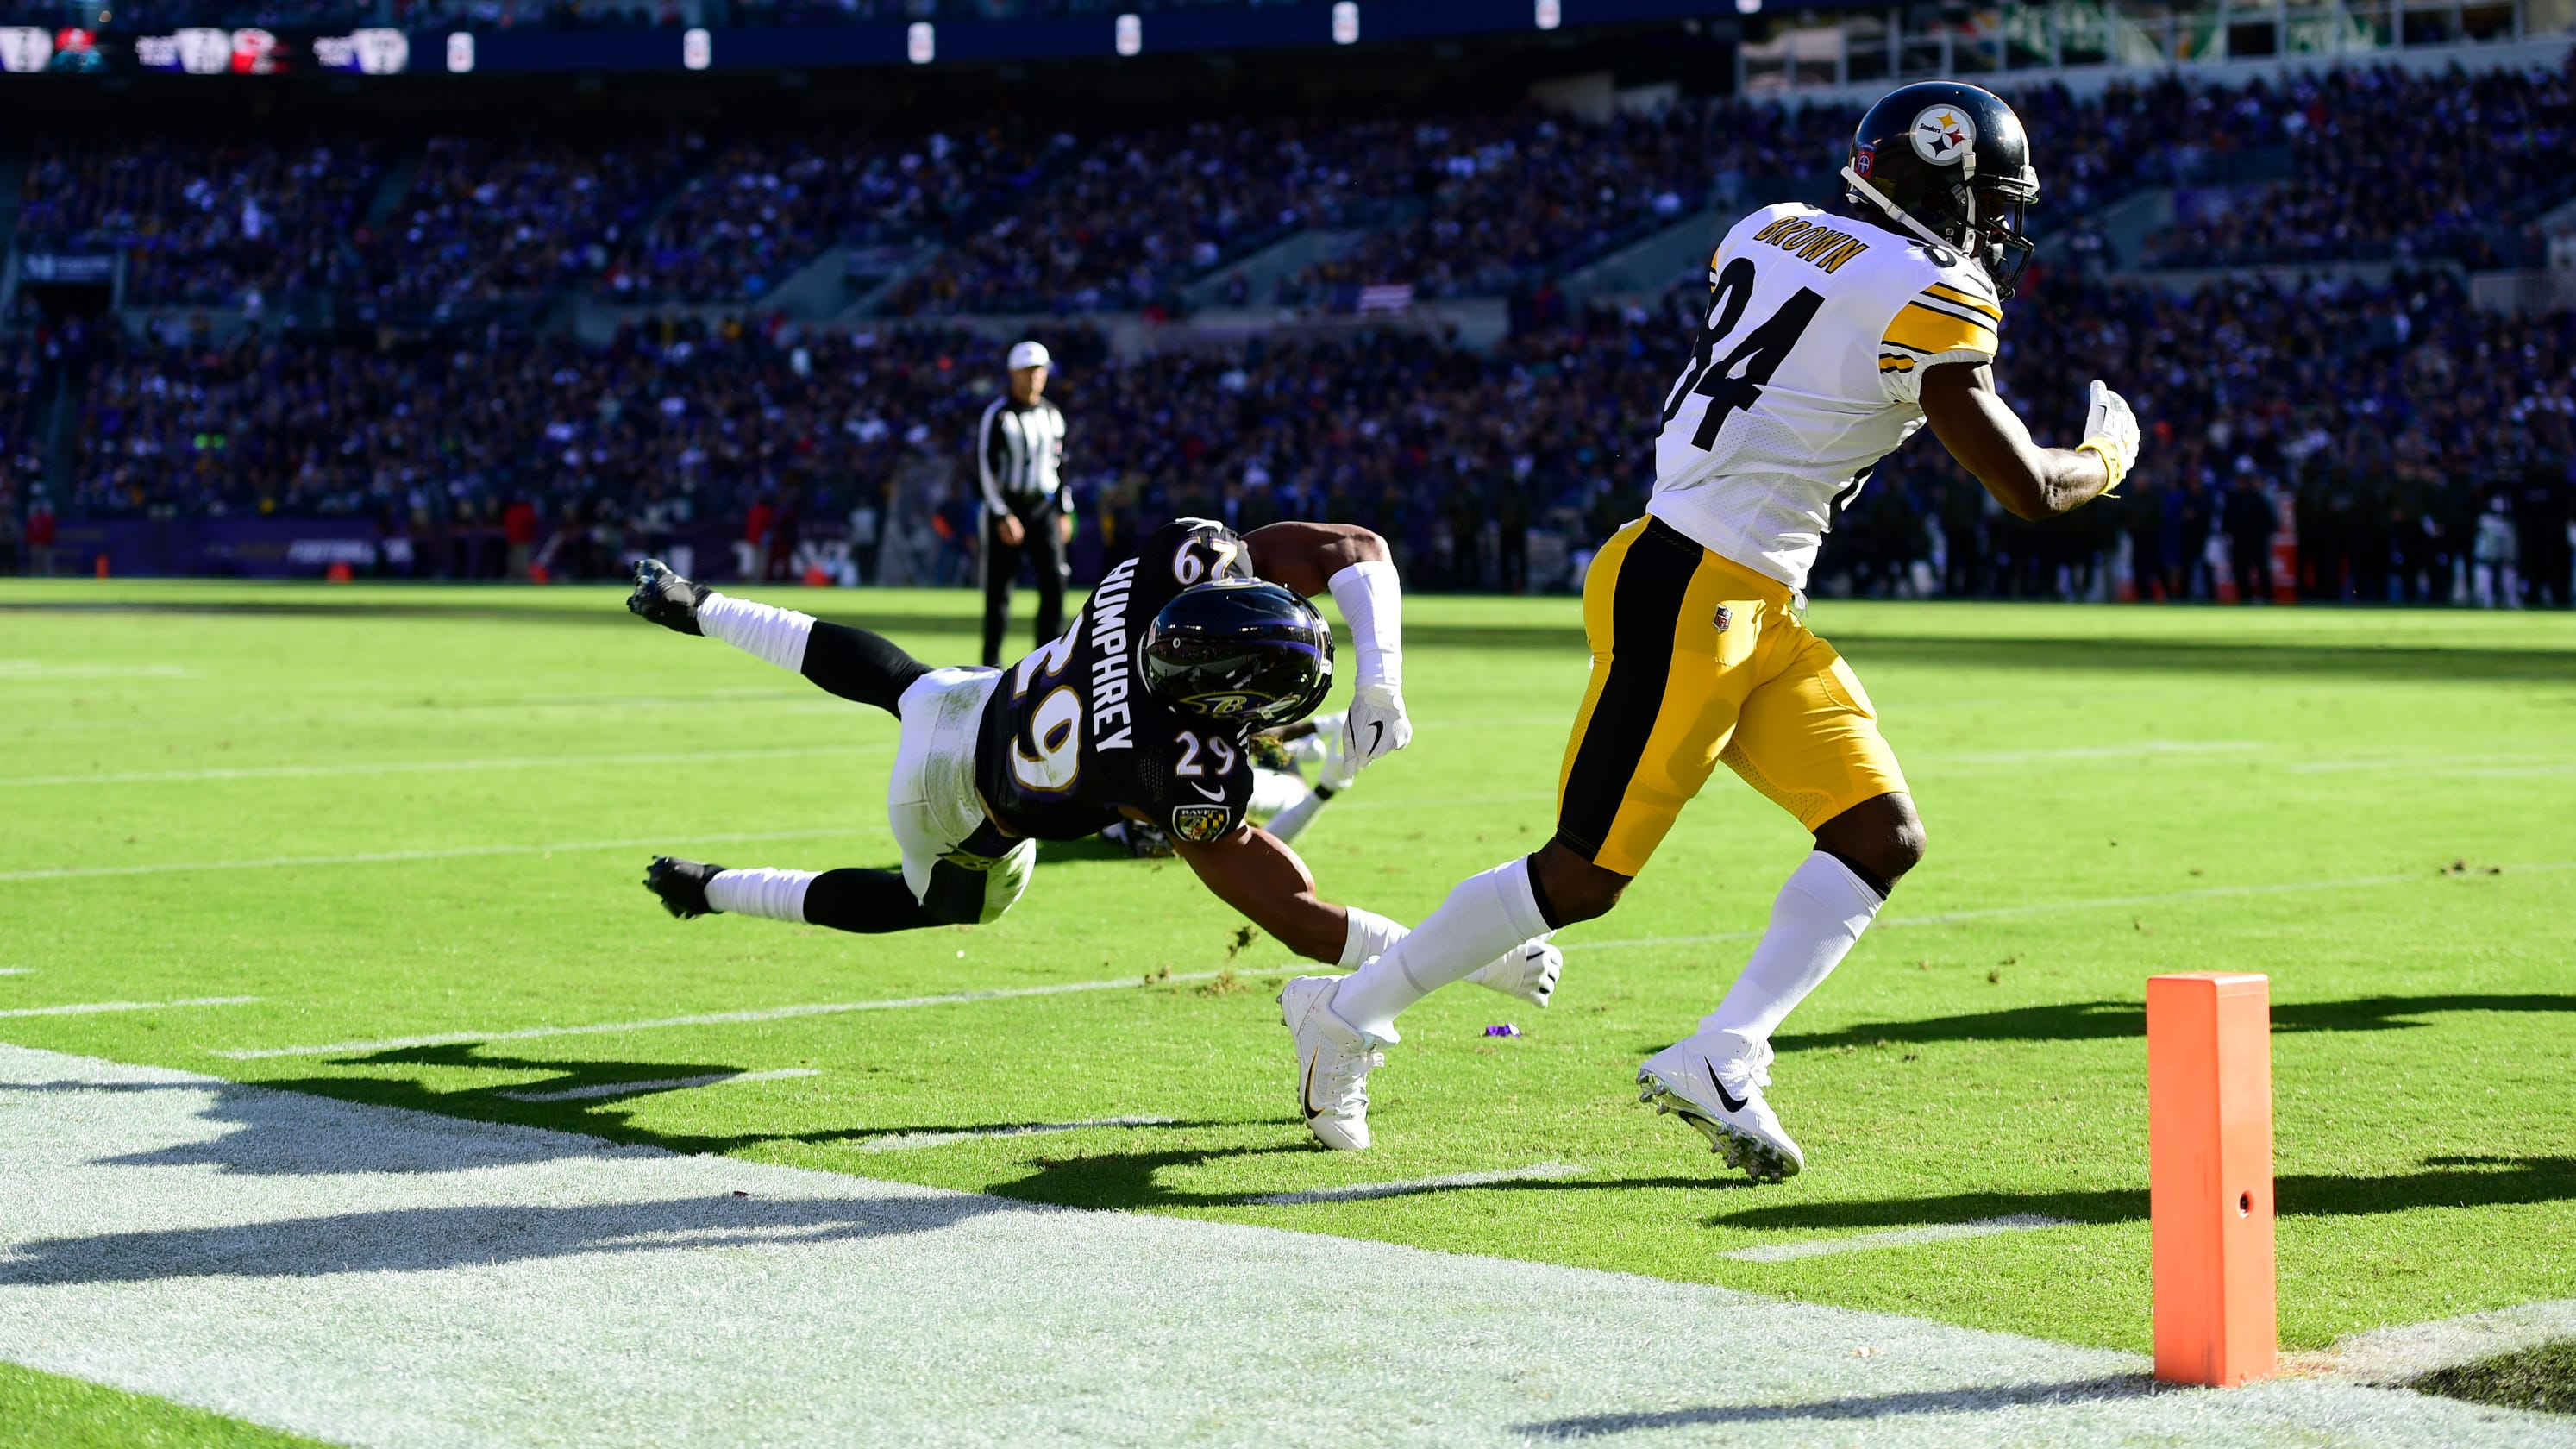 Ben Roethlisberger guides Pittsburgh Steelers past Baltimore Ravens 23-16 2a4439f1e